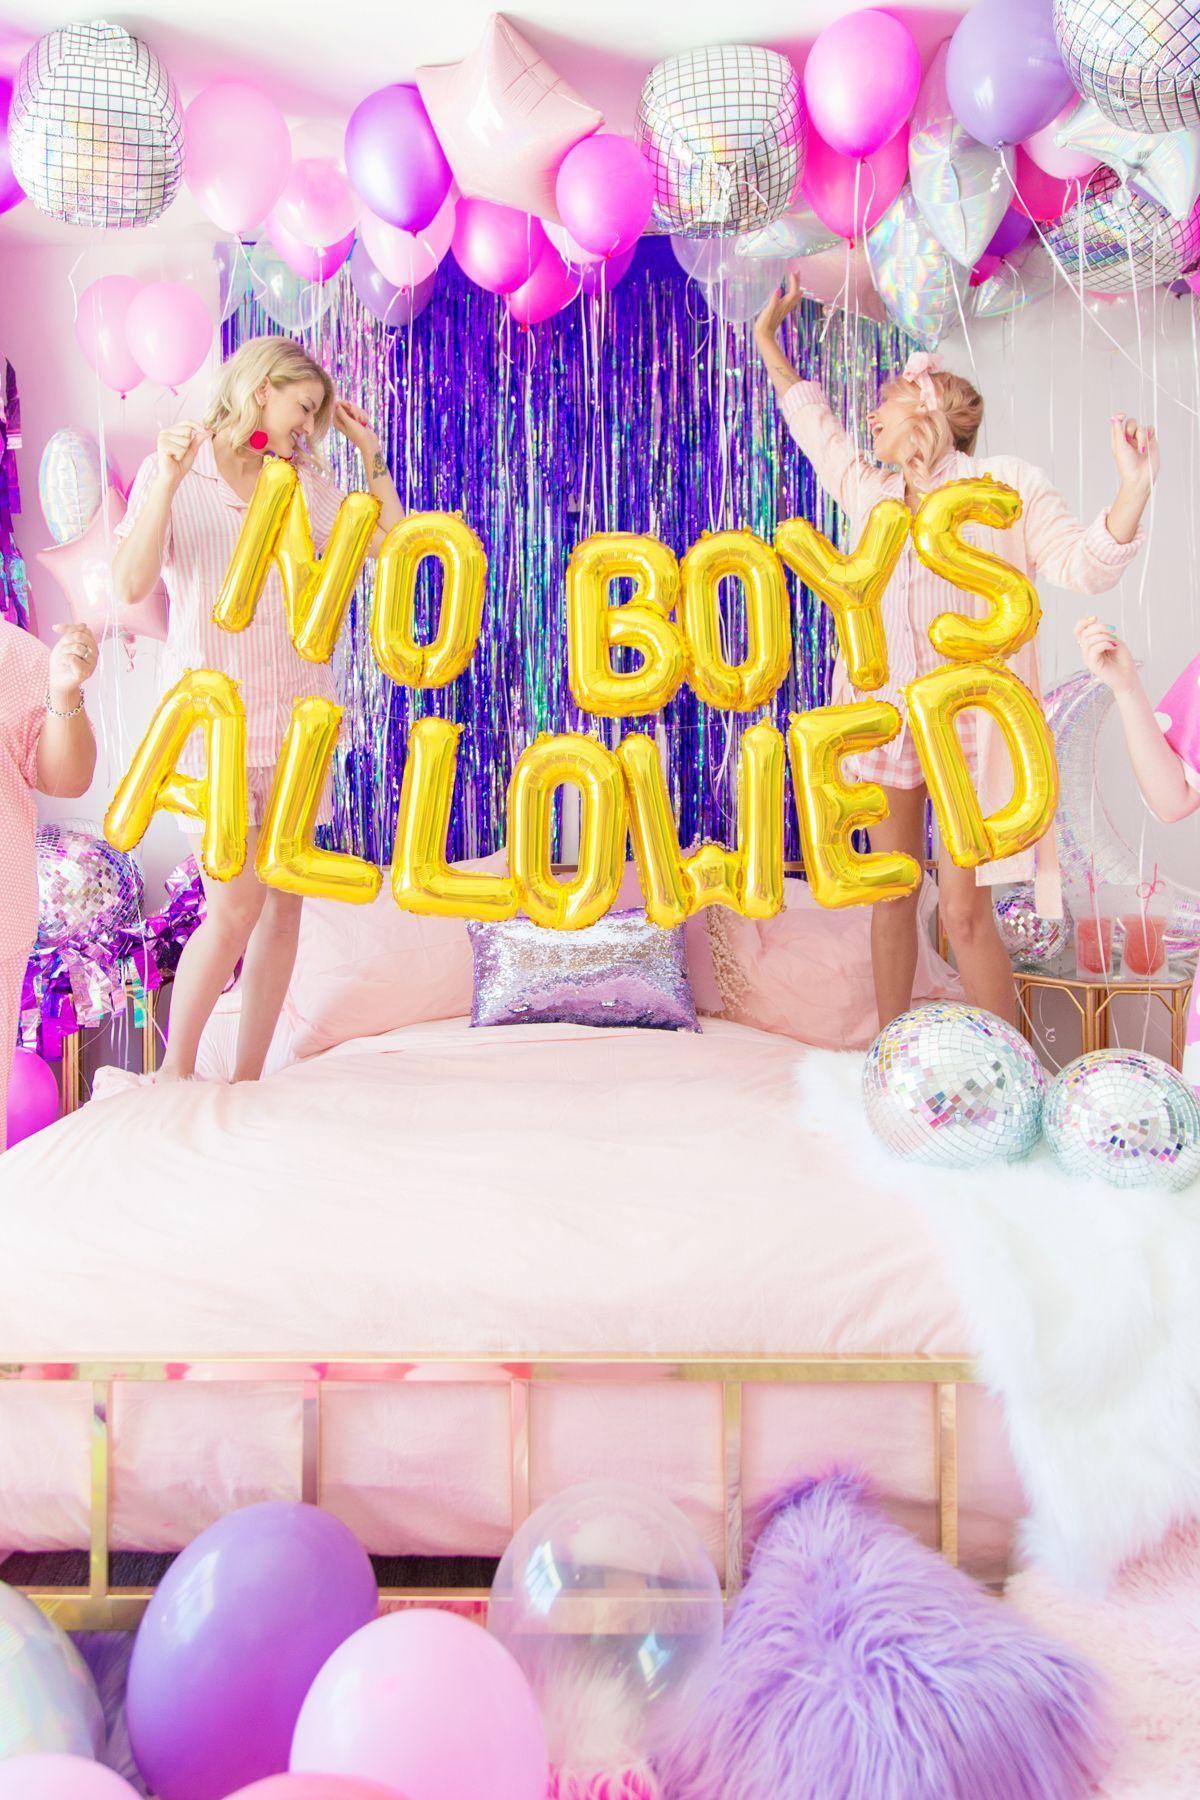 No Boys Allowed: A Holographic + Neon Slumber Party | Eden birthday ...